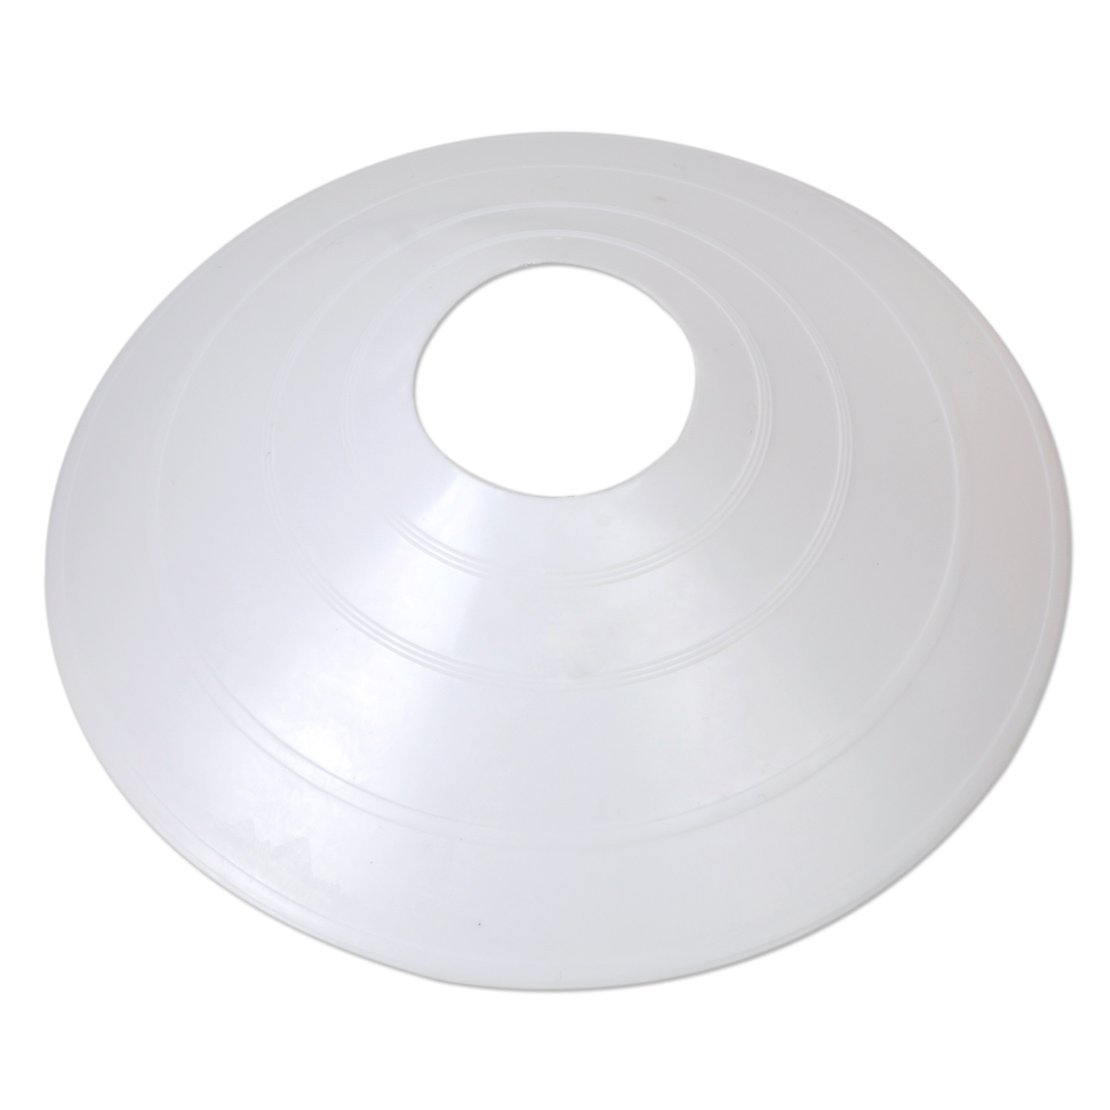 Football Soccer Rugby Sport Cross Speed Training Space Marker Track Disc Cone Saucer